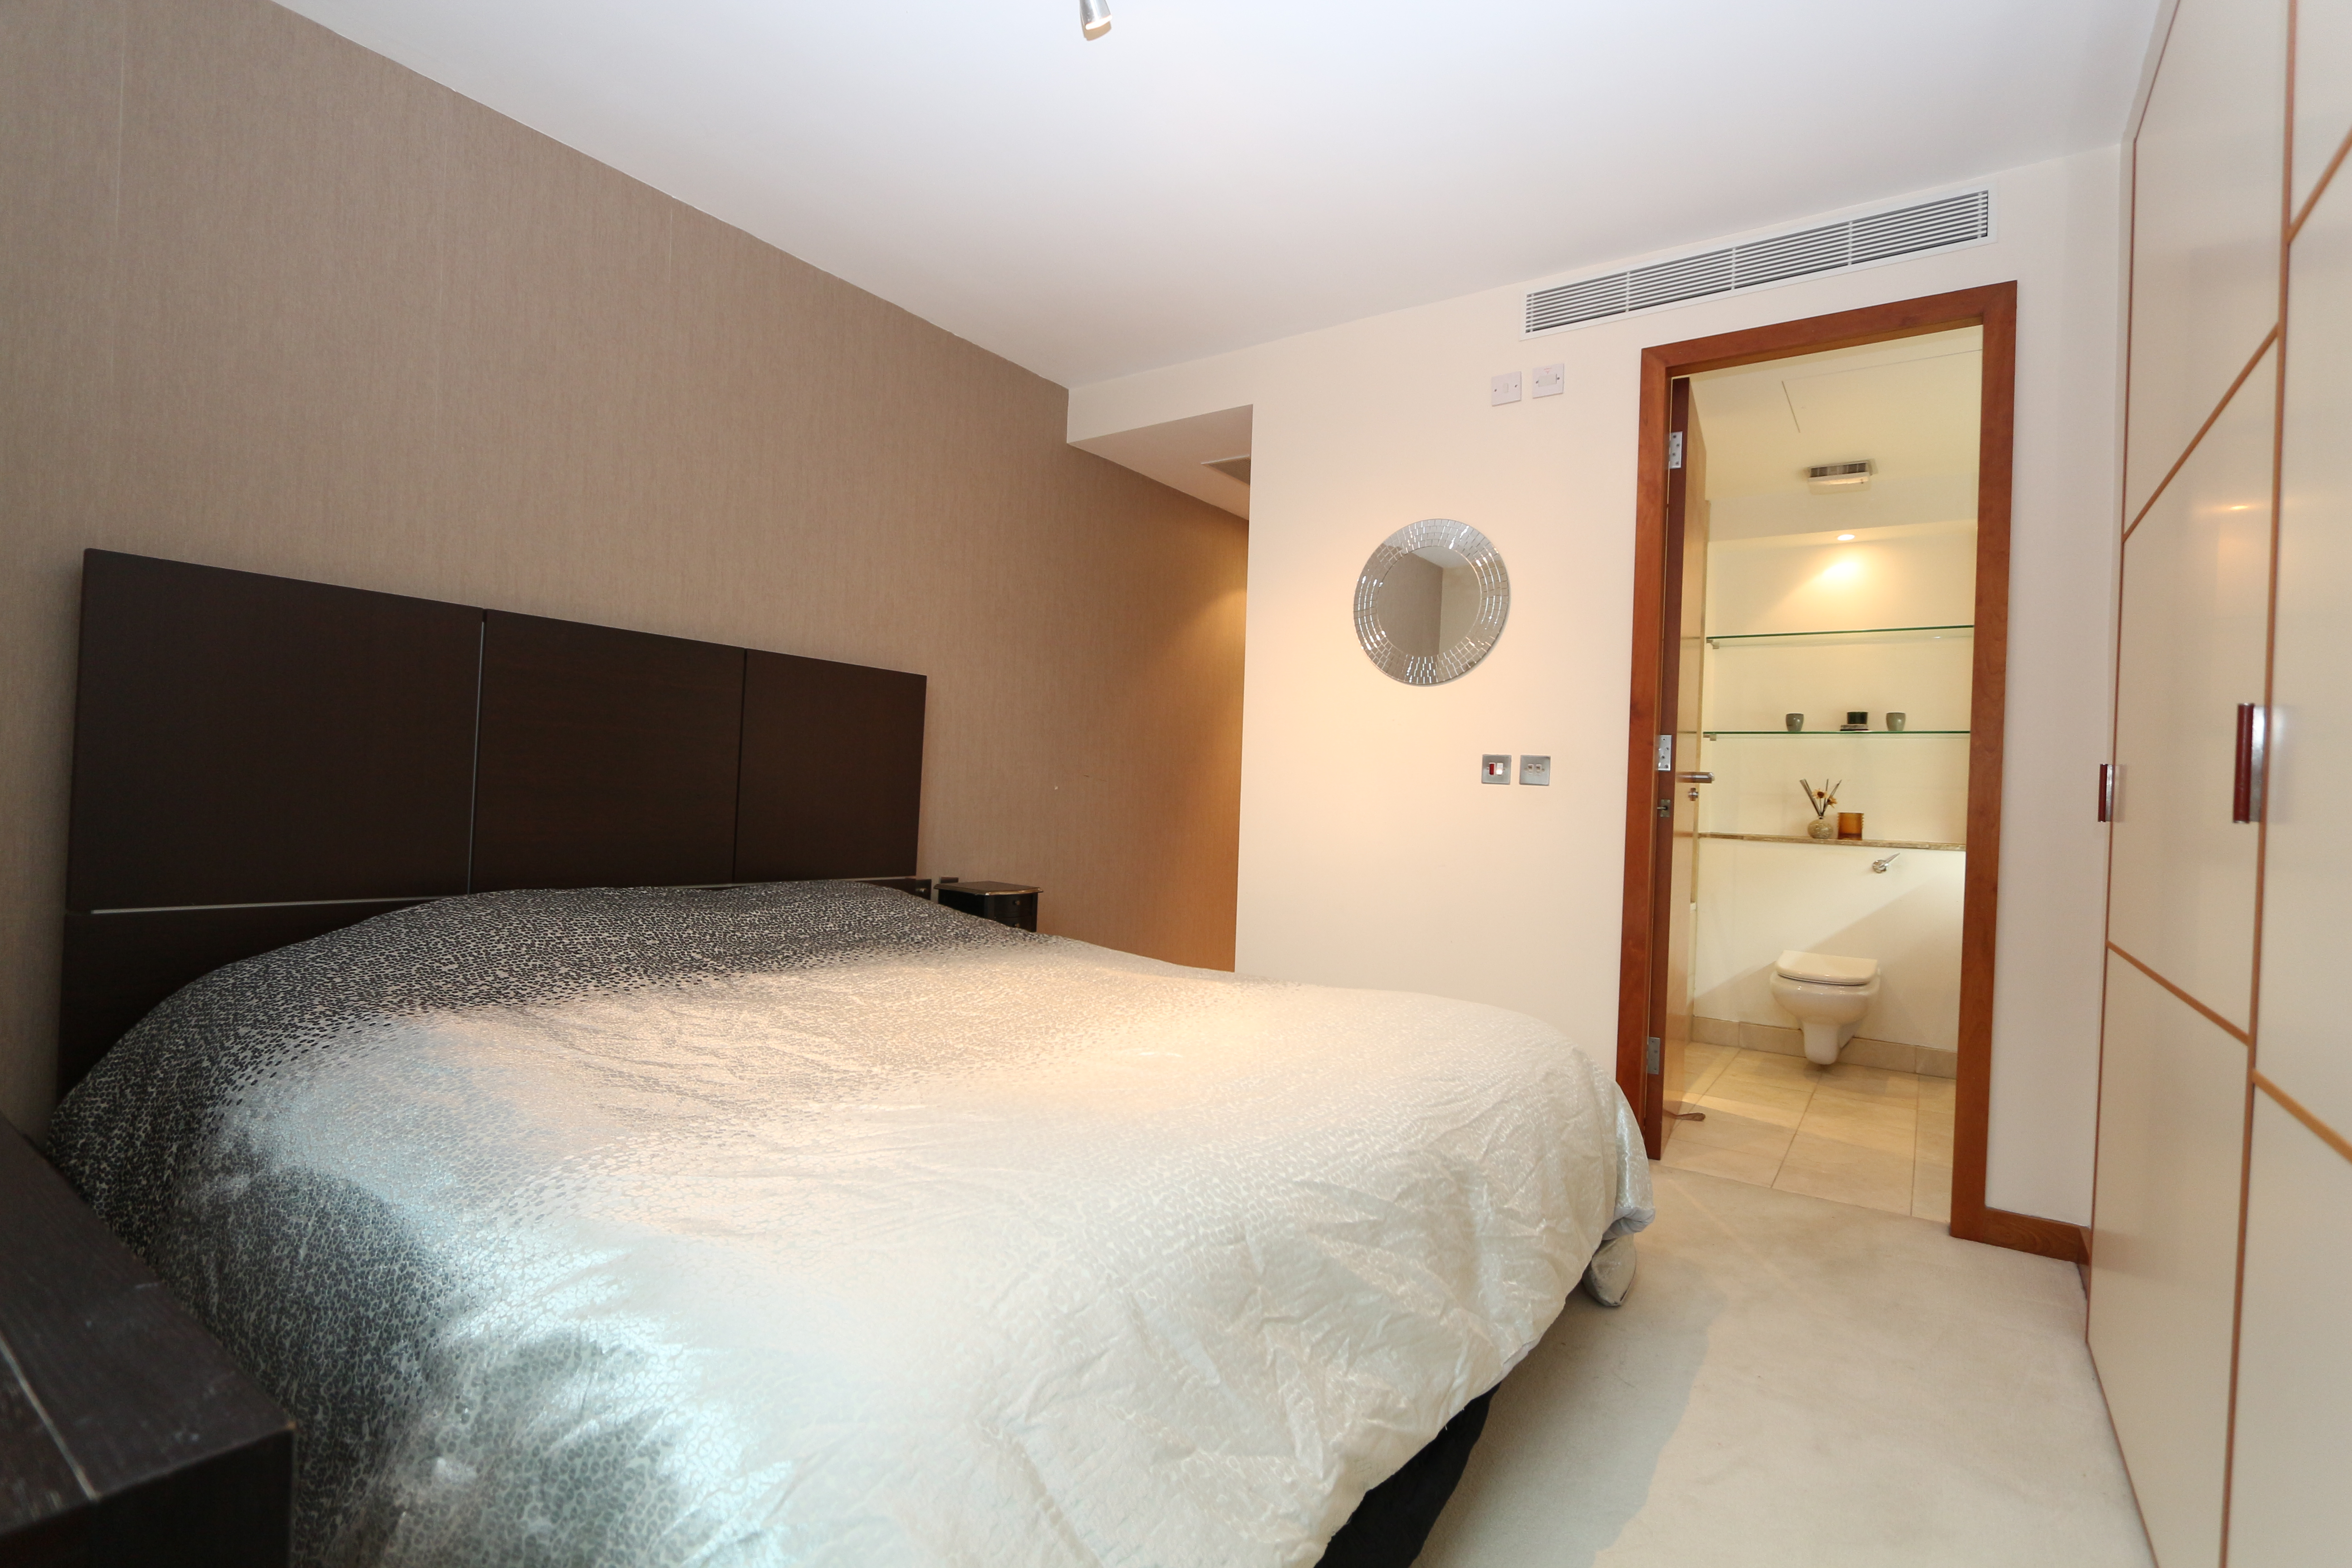 1 Bedroom Apartment For Rent Flat 511 Pavilion Apartments 34 St - The-pavilion-apartments-st-johns-wood-road